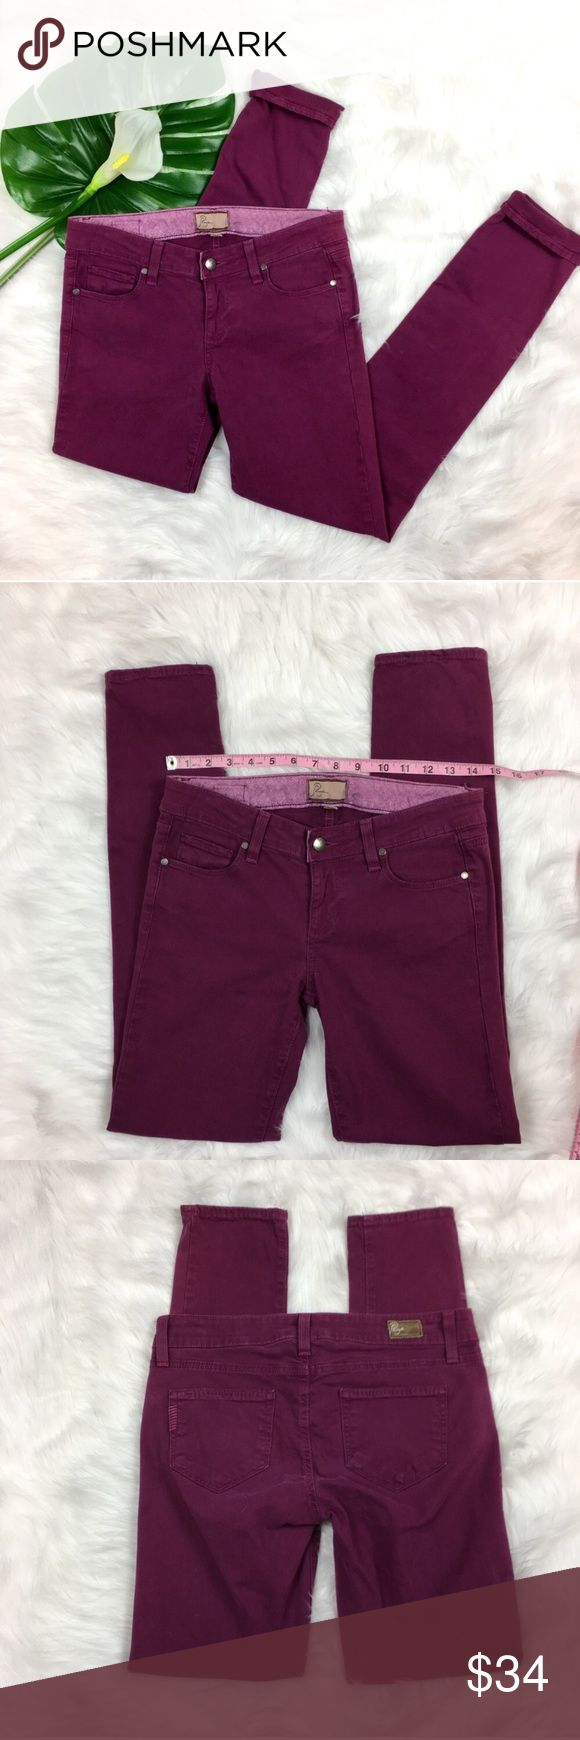 Paige Jean Peg Skinny in Wine Purple Paige Jean Peg Skinny in Wine Purple. Size 26 with 29' inseam and 7 1/2' rise. Pre-owned condition with some wash fading. Can be noticed more around pockets and zipper. Has a few spots coming undone on seam along waist and hem but they are not running or easy to rip open more. Does not affect wear. Or can be seen.   ❌I do not Trade 🙅🏻 Or model💲 Posh Transactions ONLY PAIGE Jeans Skinny